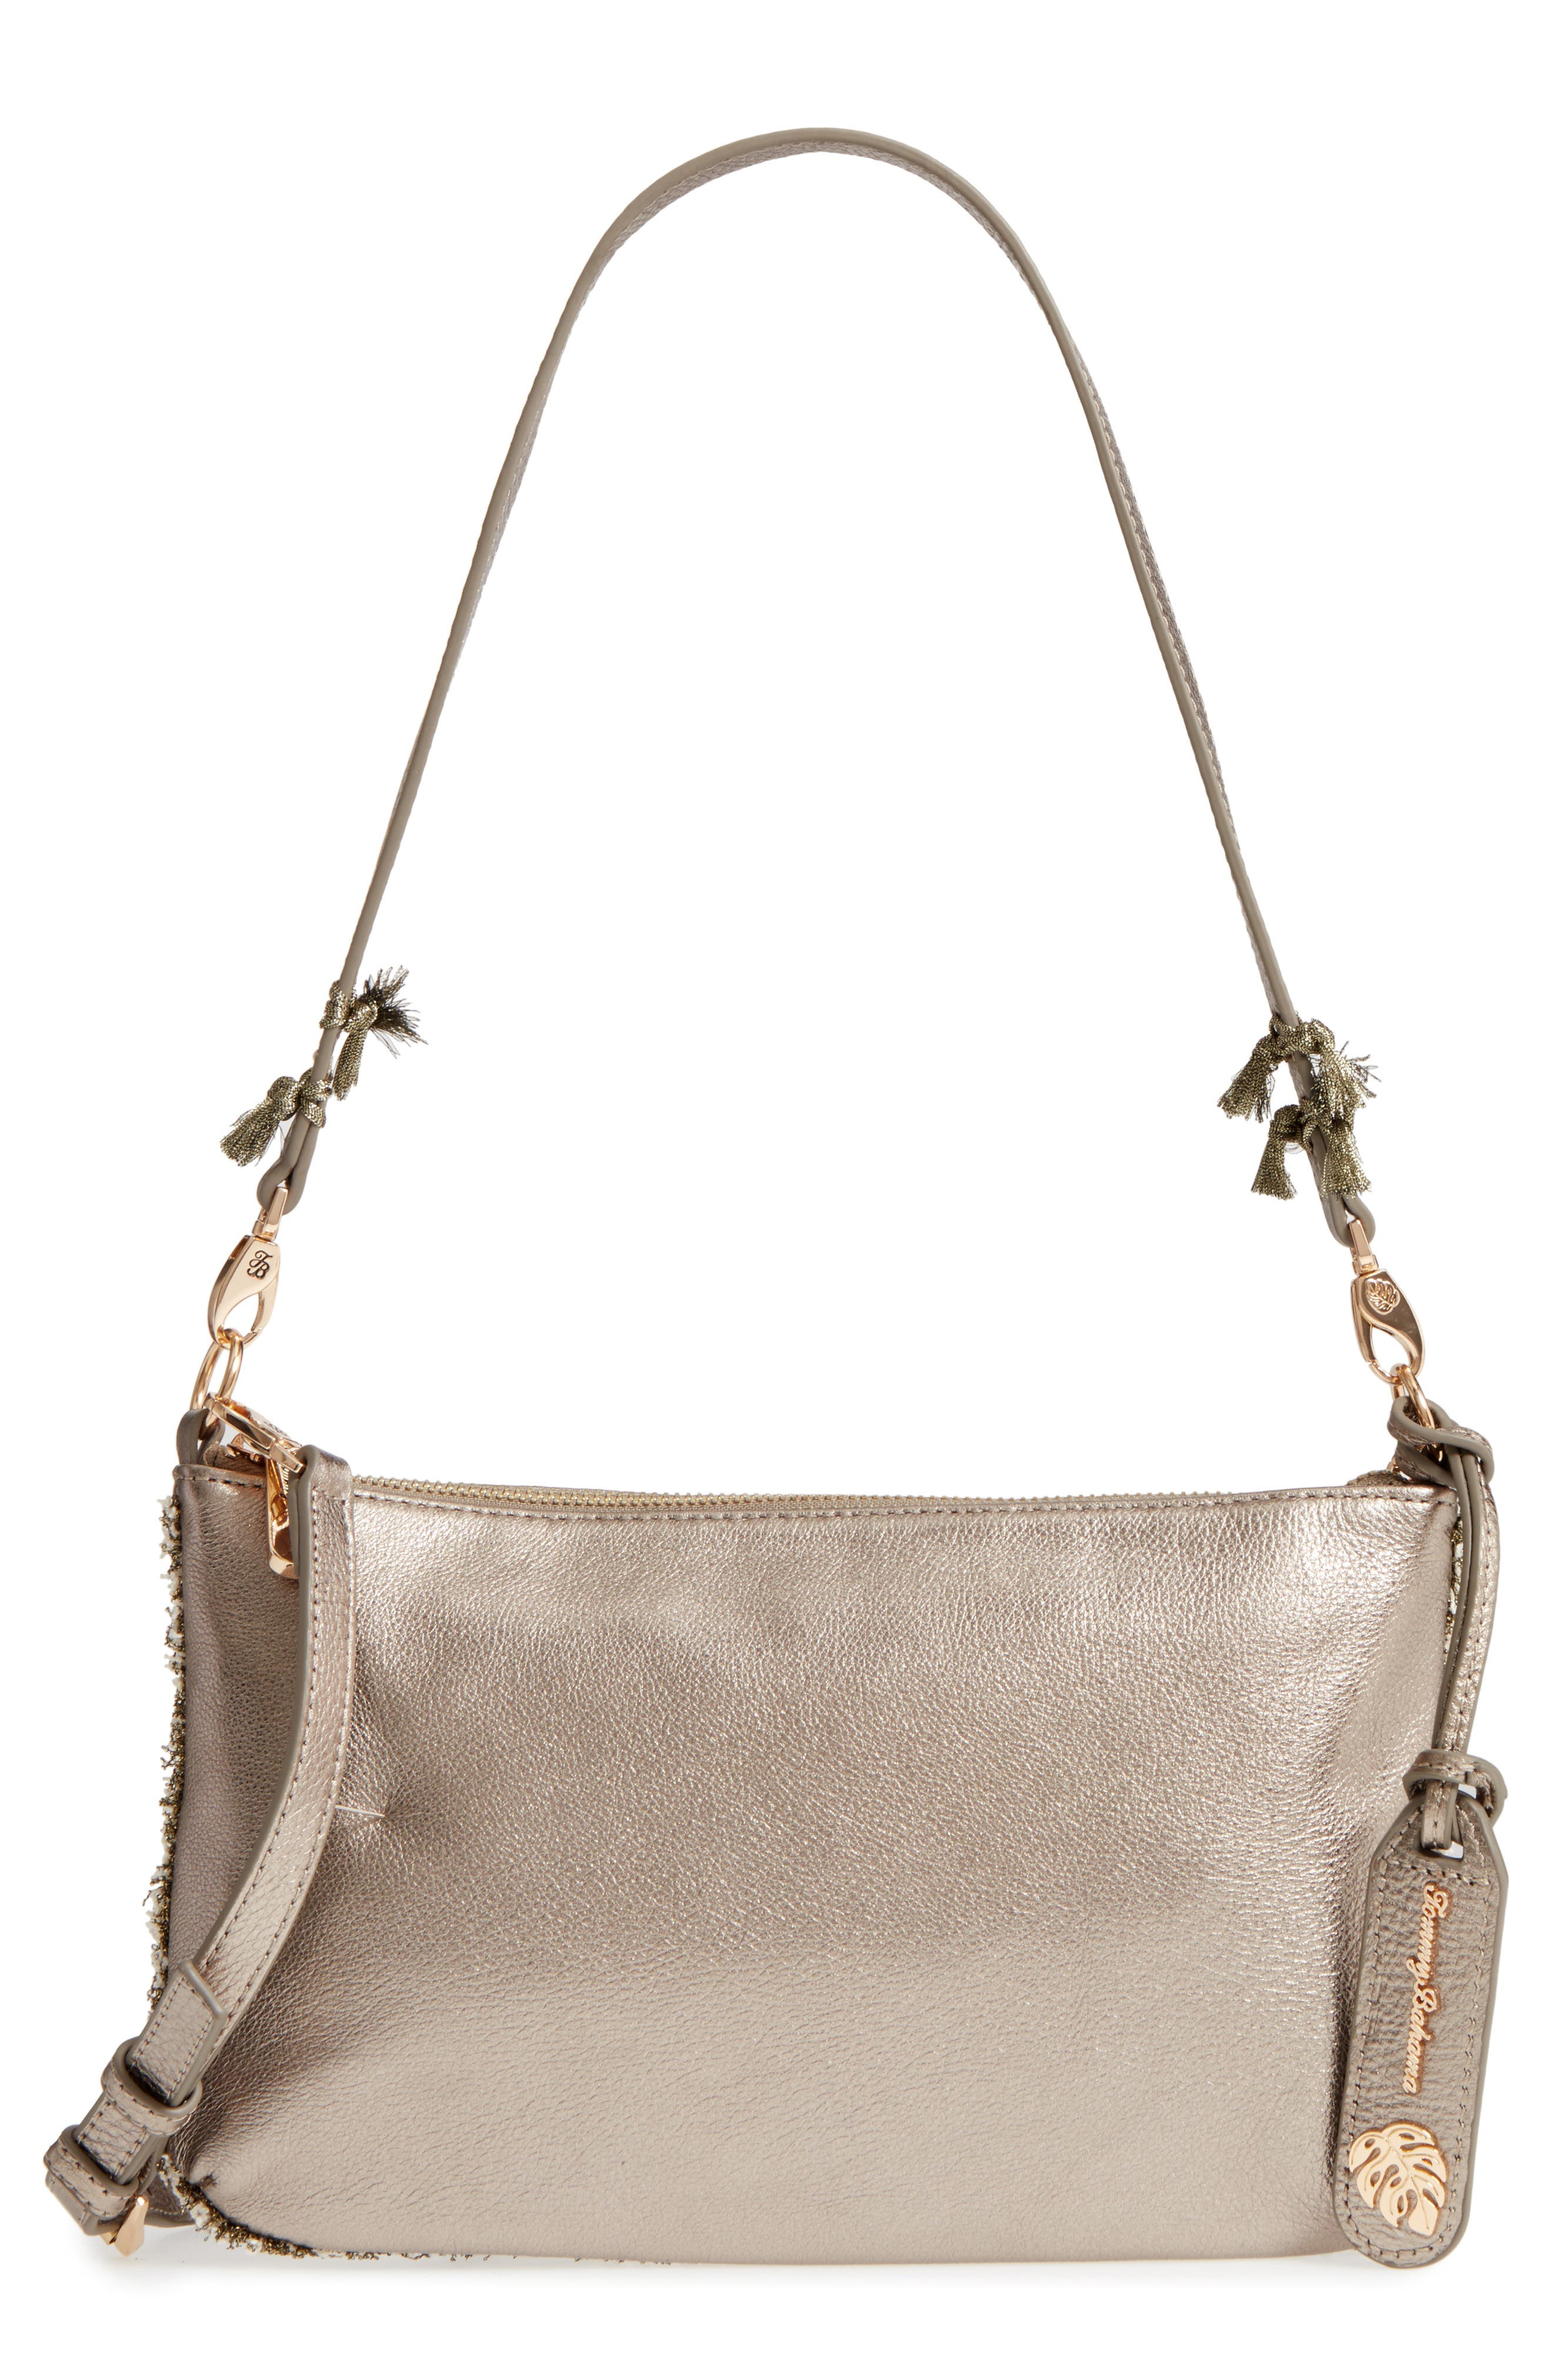 Alternate Image 1 Selected - Tommy Bahama Can Can Convertible Leather Crossbody Bag